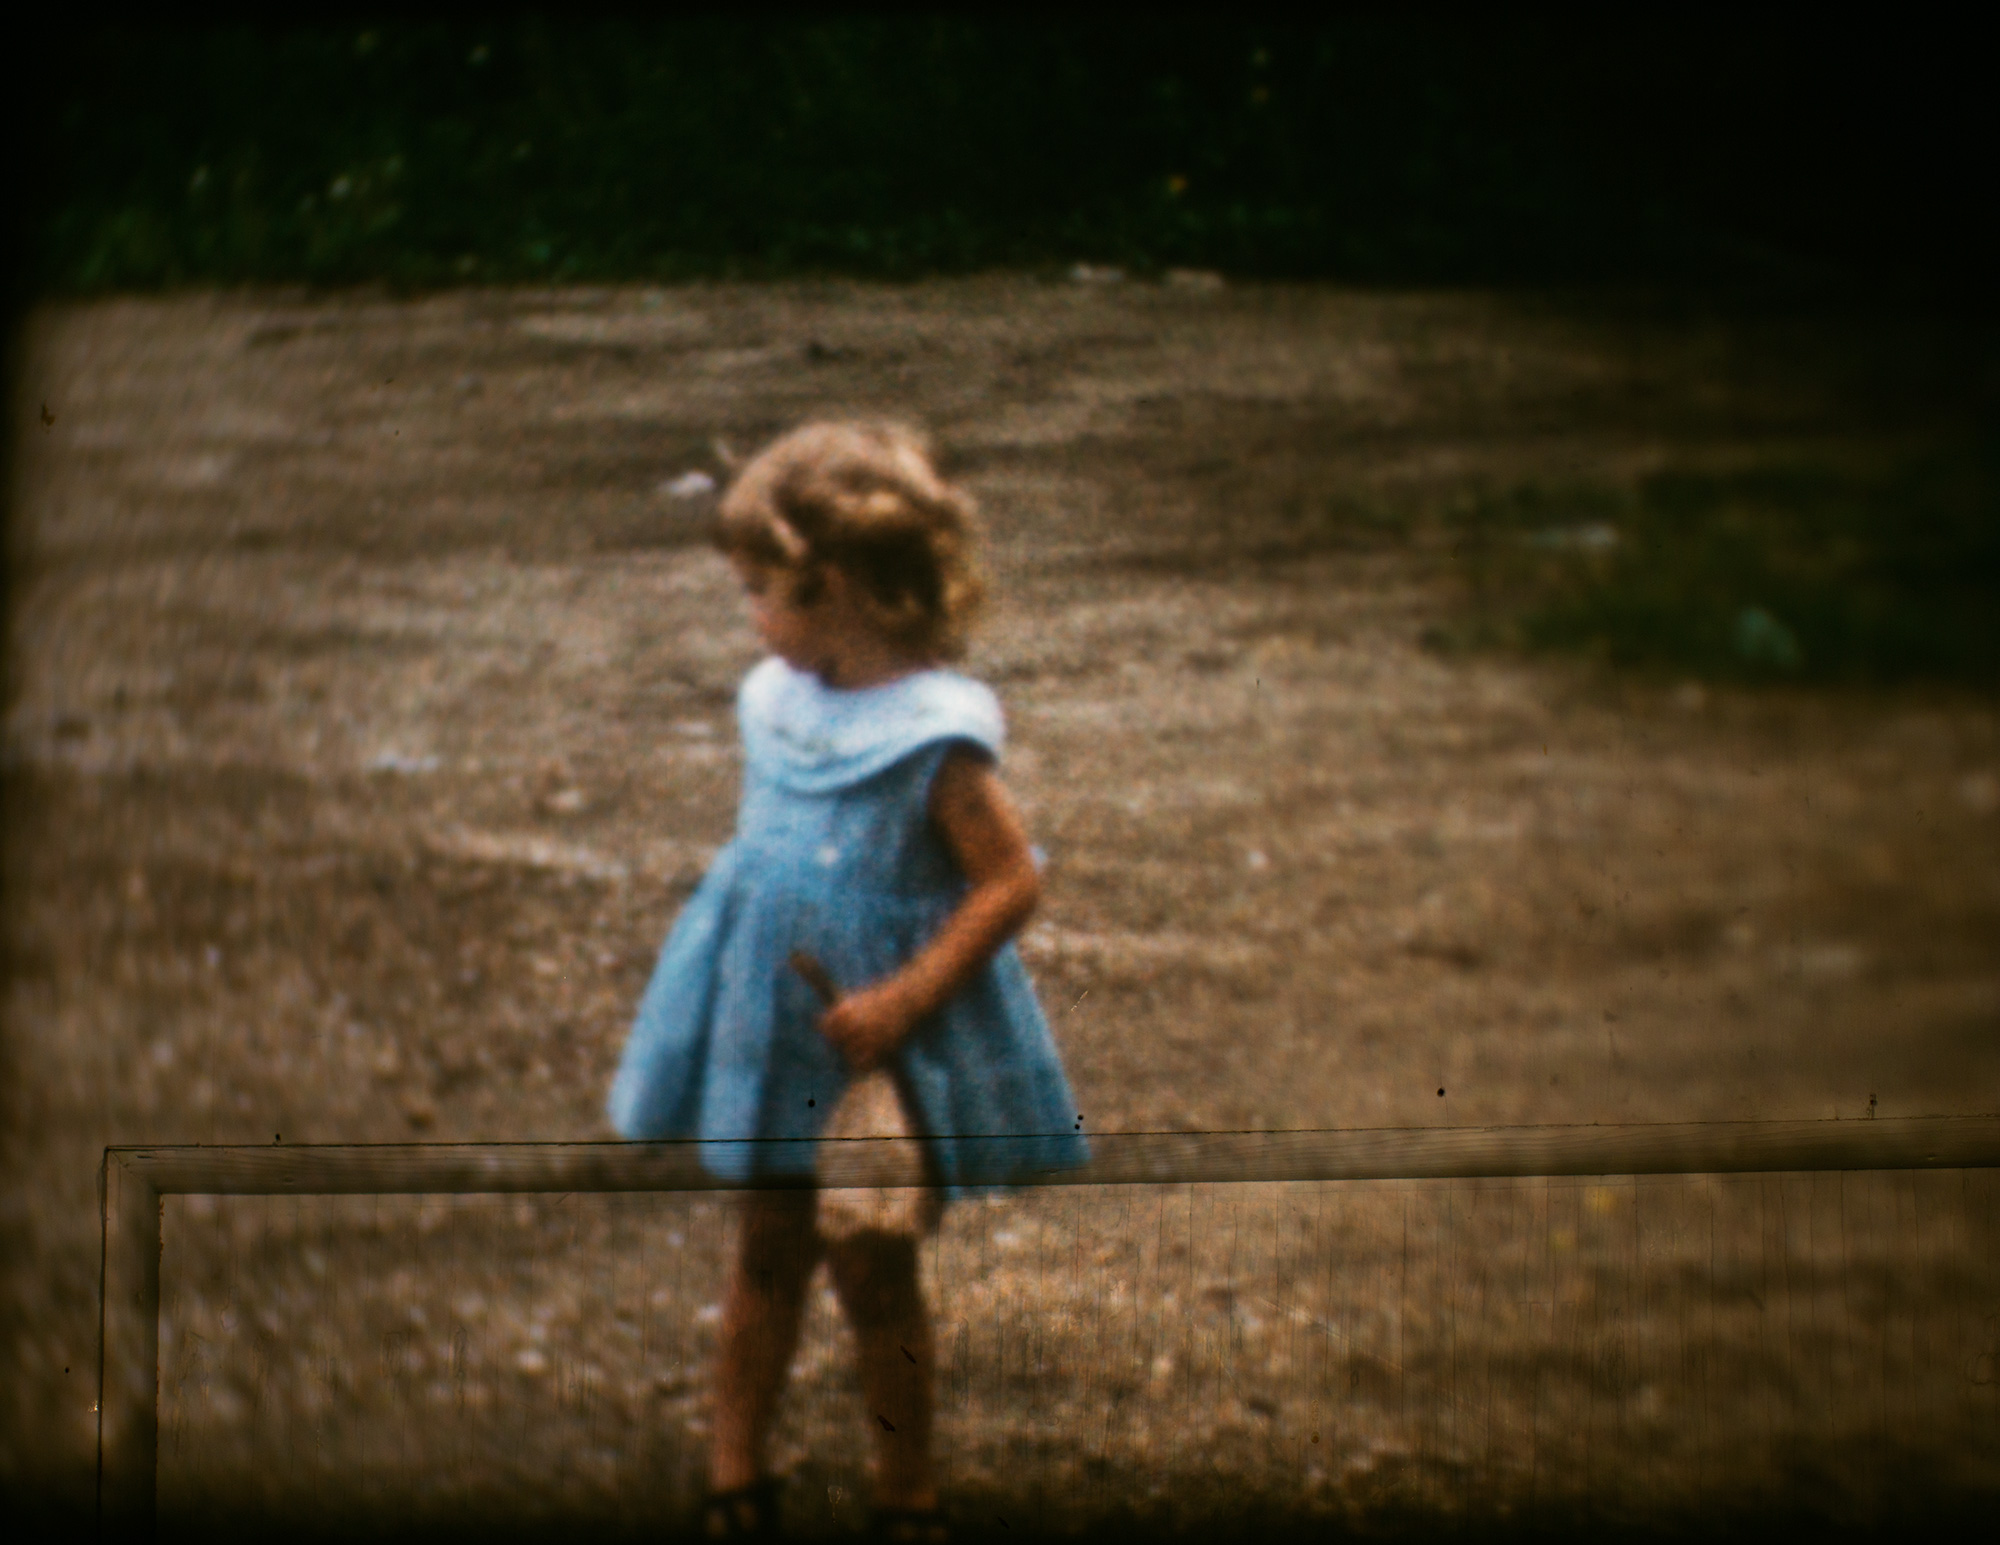 The Girl in the Blue Dress 2015